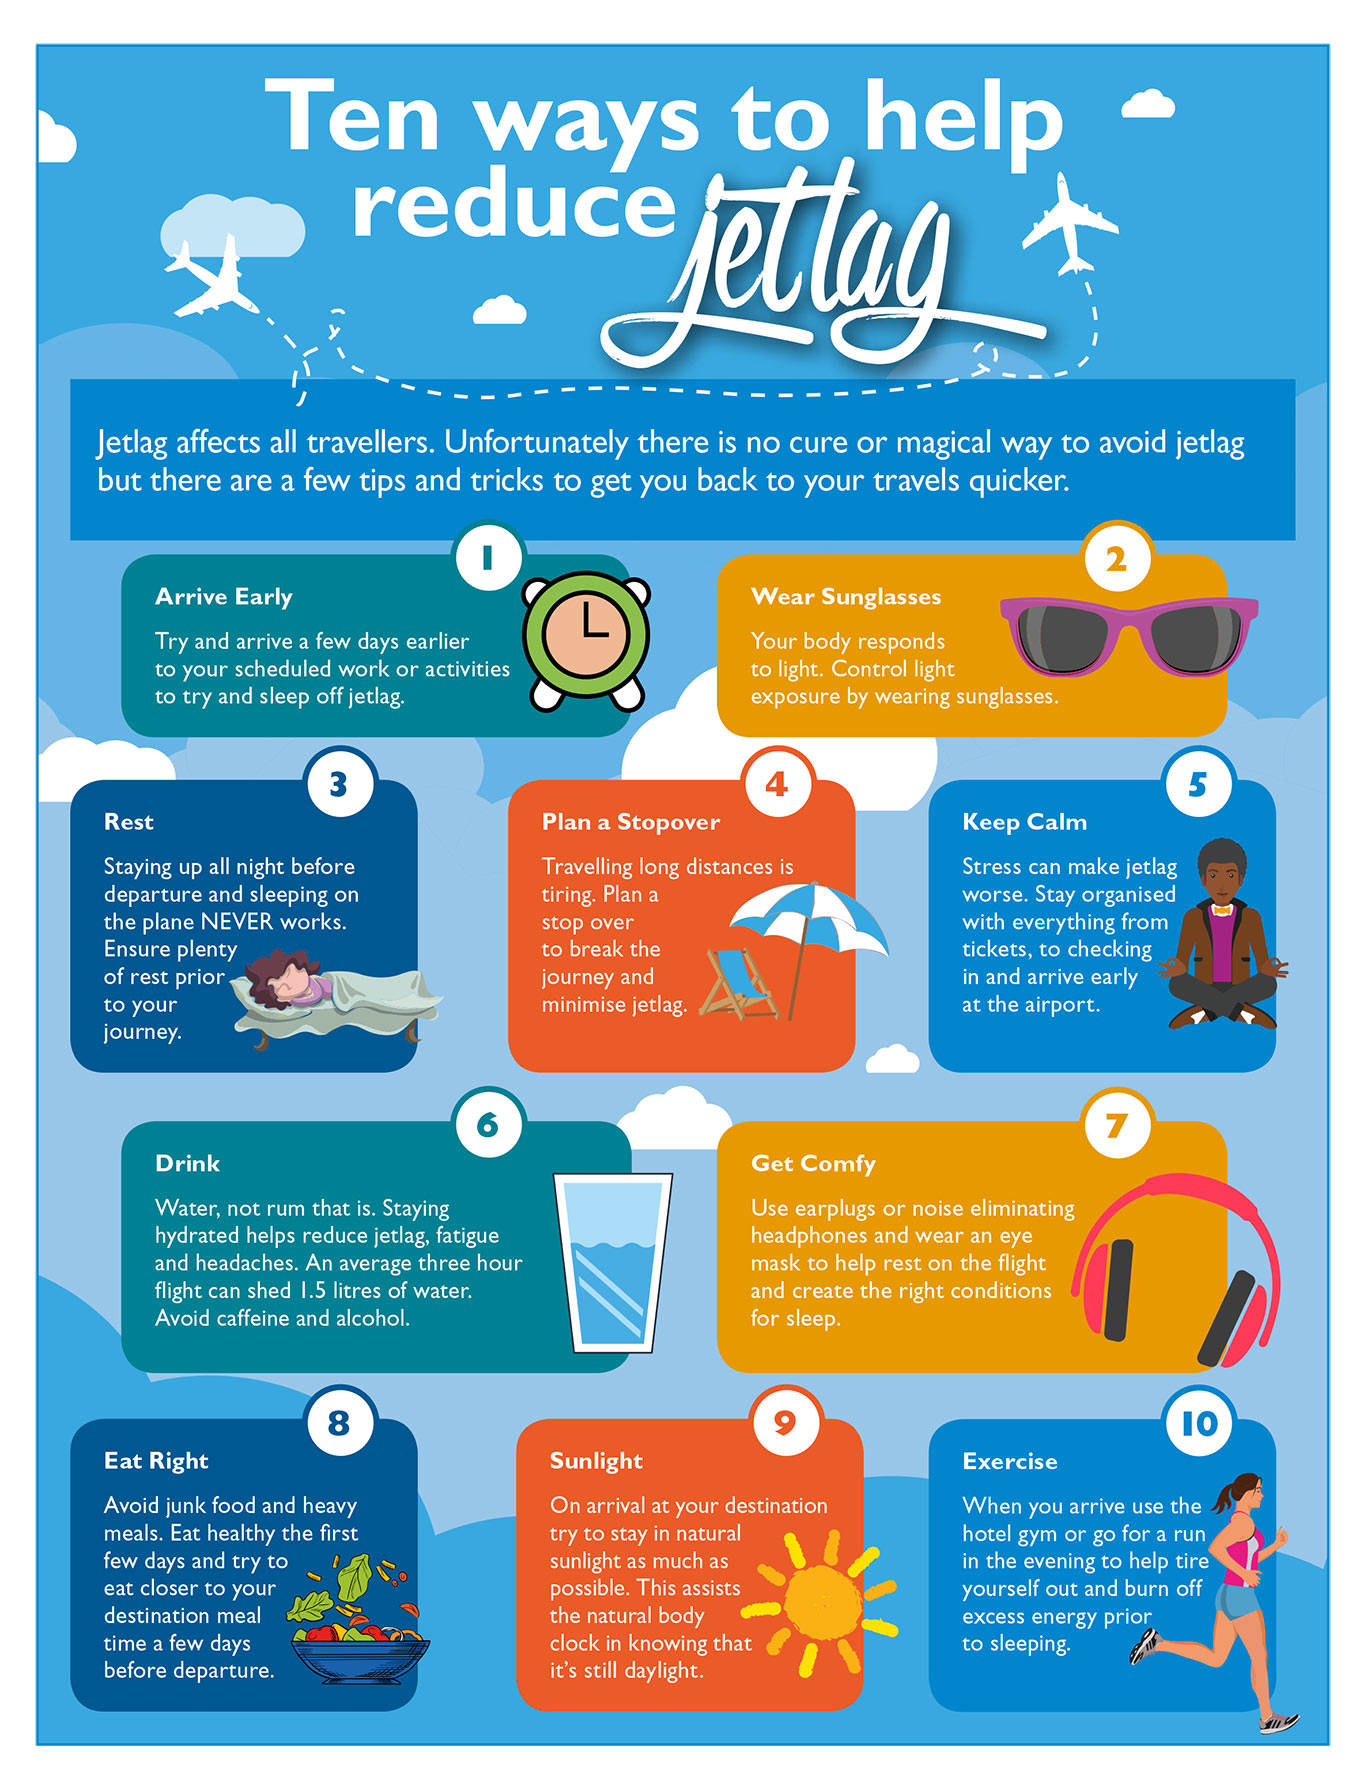 How to reduce jet lag.